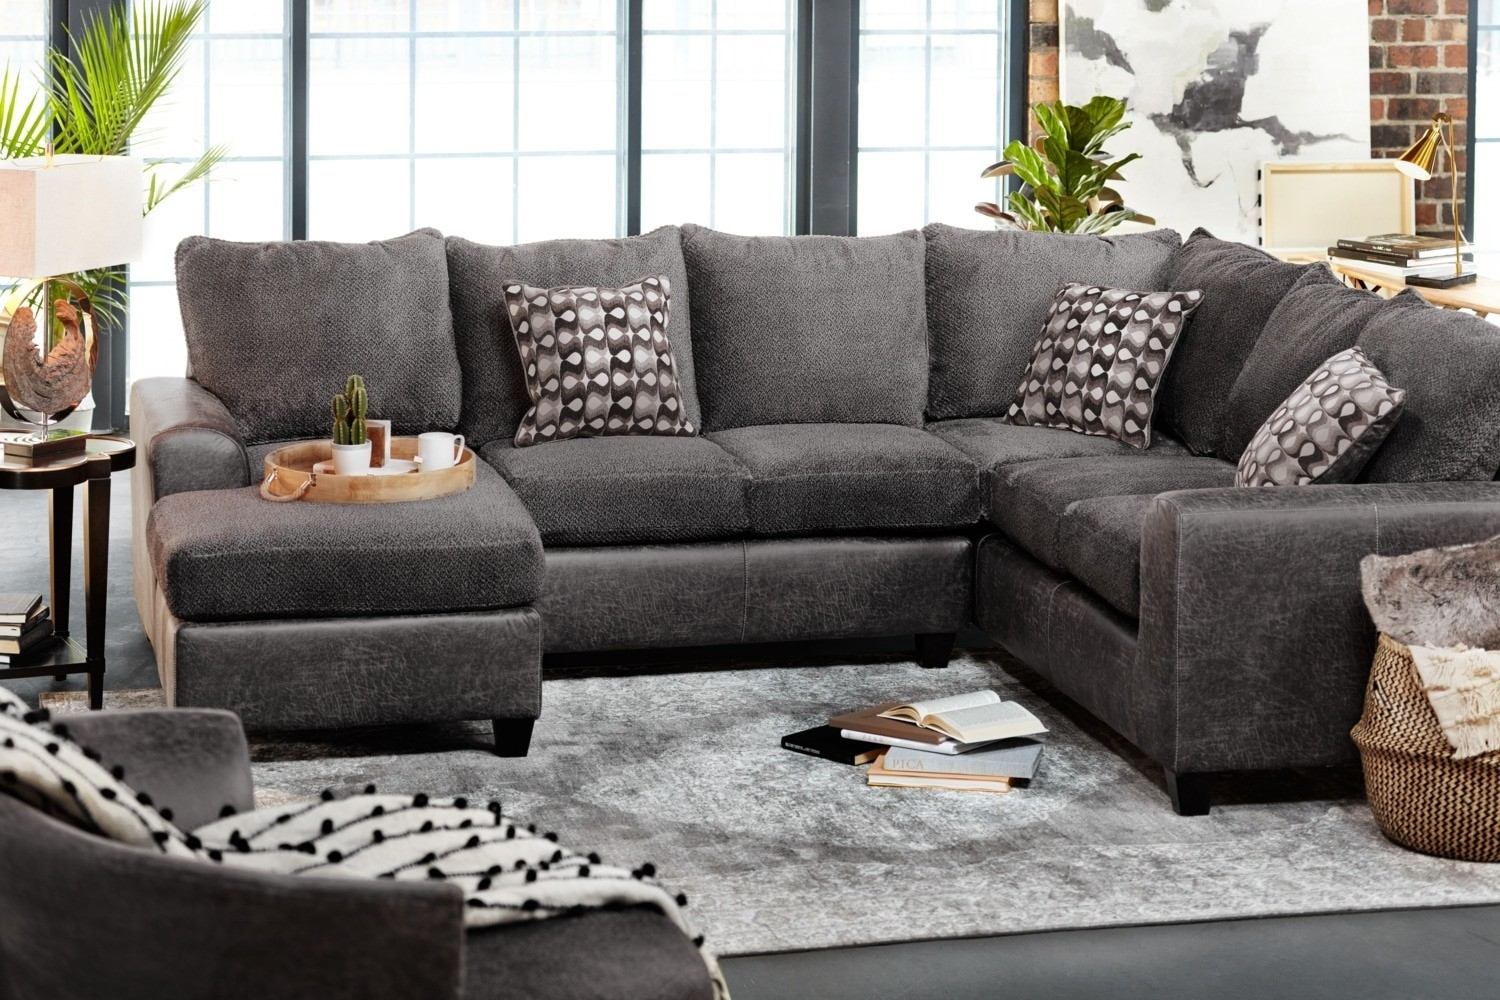 3 Piece Sectional Malbry Point W Laf Chaise Living Spaces 223533 0 With Regard To Malbry Point 3 Piece Sectionals With Laf Chaise (Photo 2 of 25)